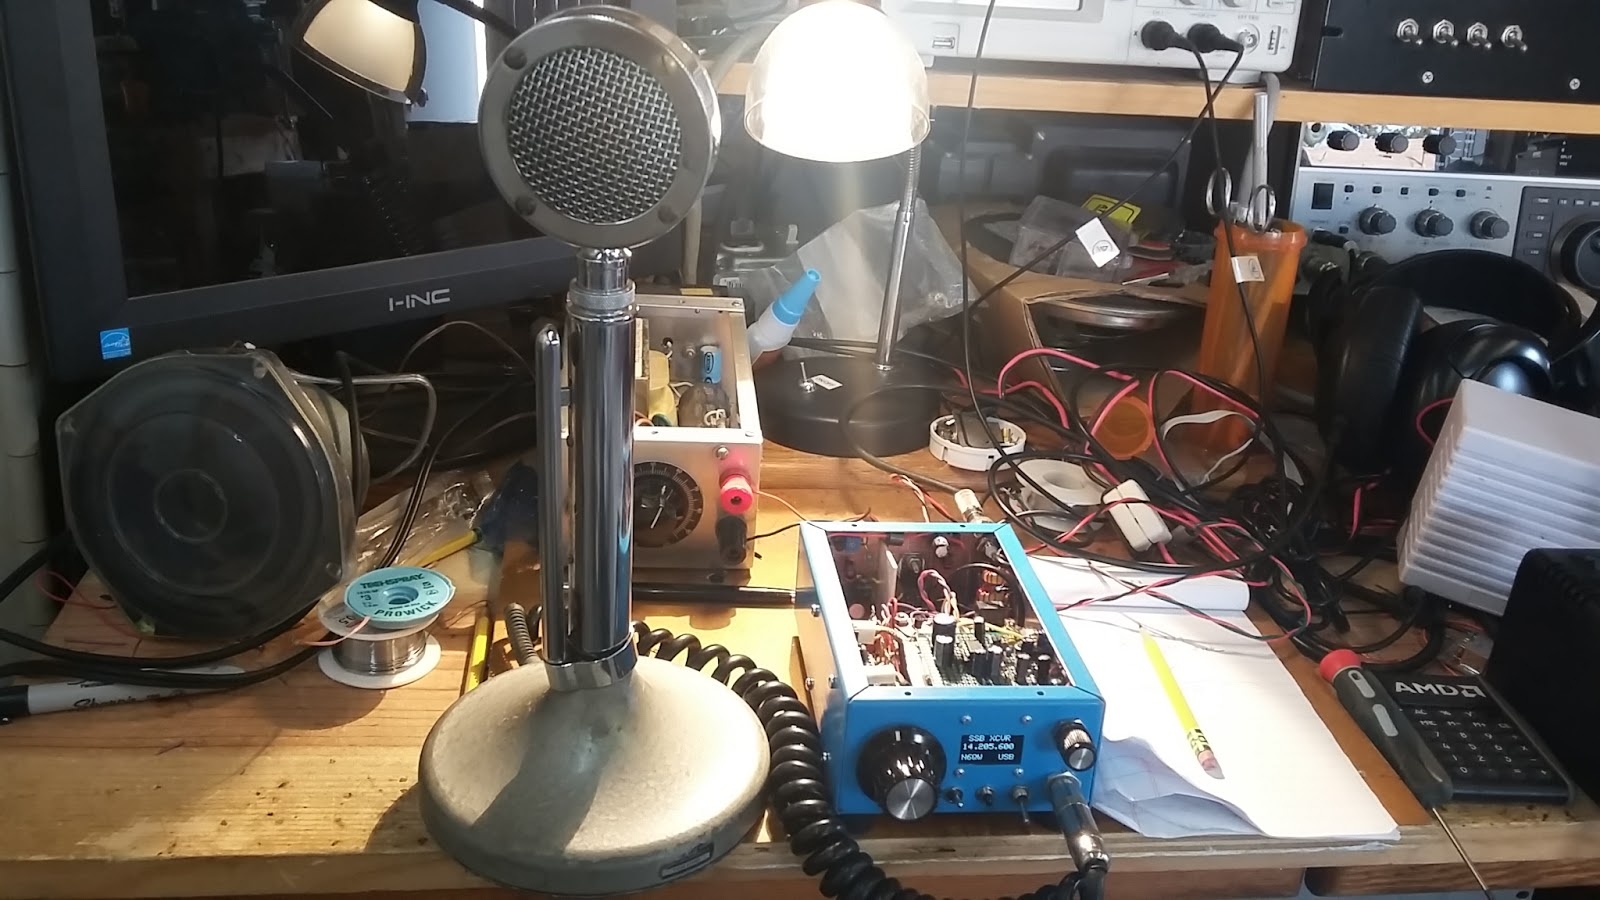 N6qws Mini Rig Amp Meter For My This Allows You To Use The One Panel At Photo Below And Relative Size As Compared Venerable D 104 Microphone Says A Lot When Your Is Smaller Than